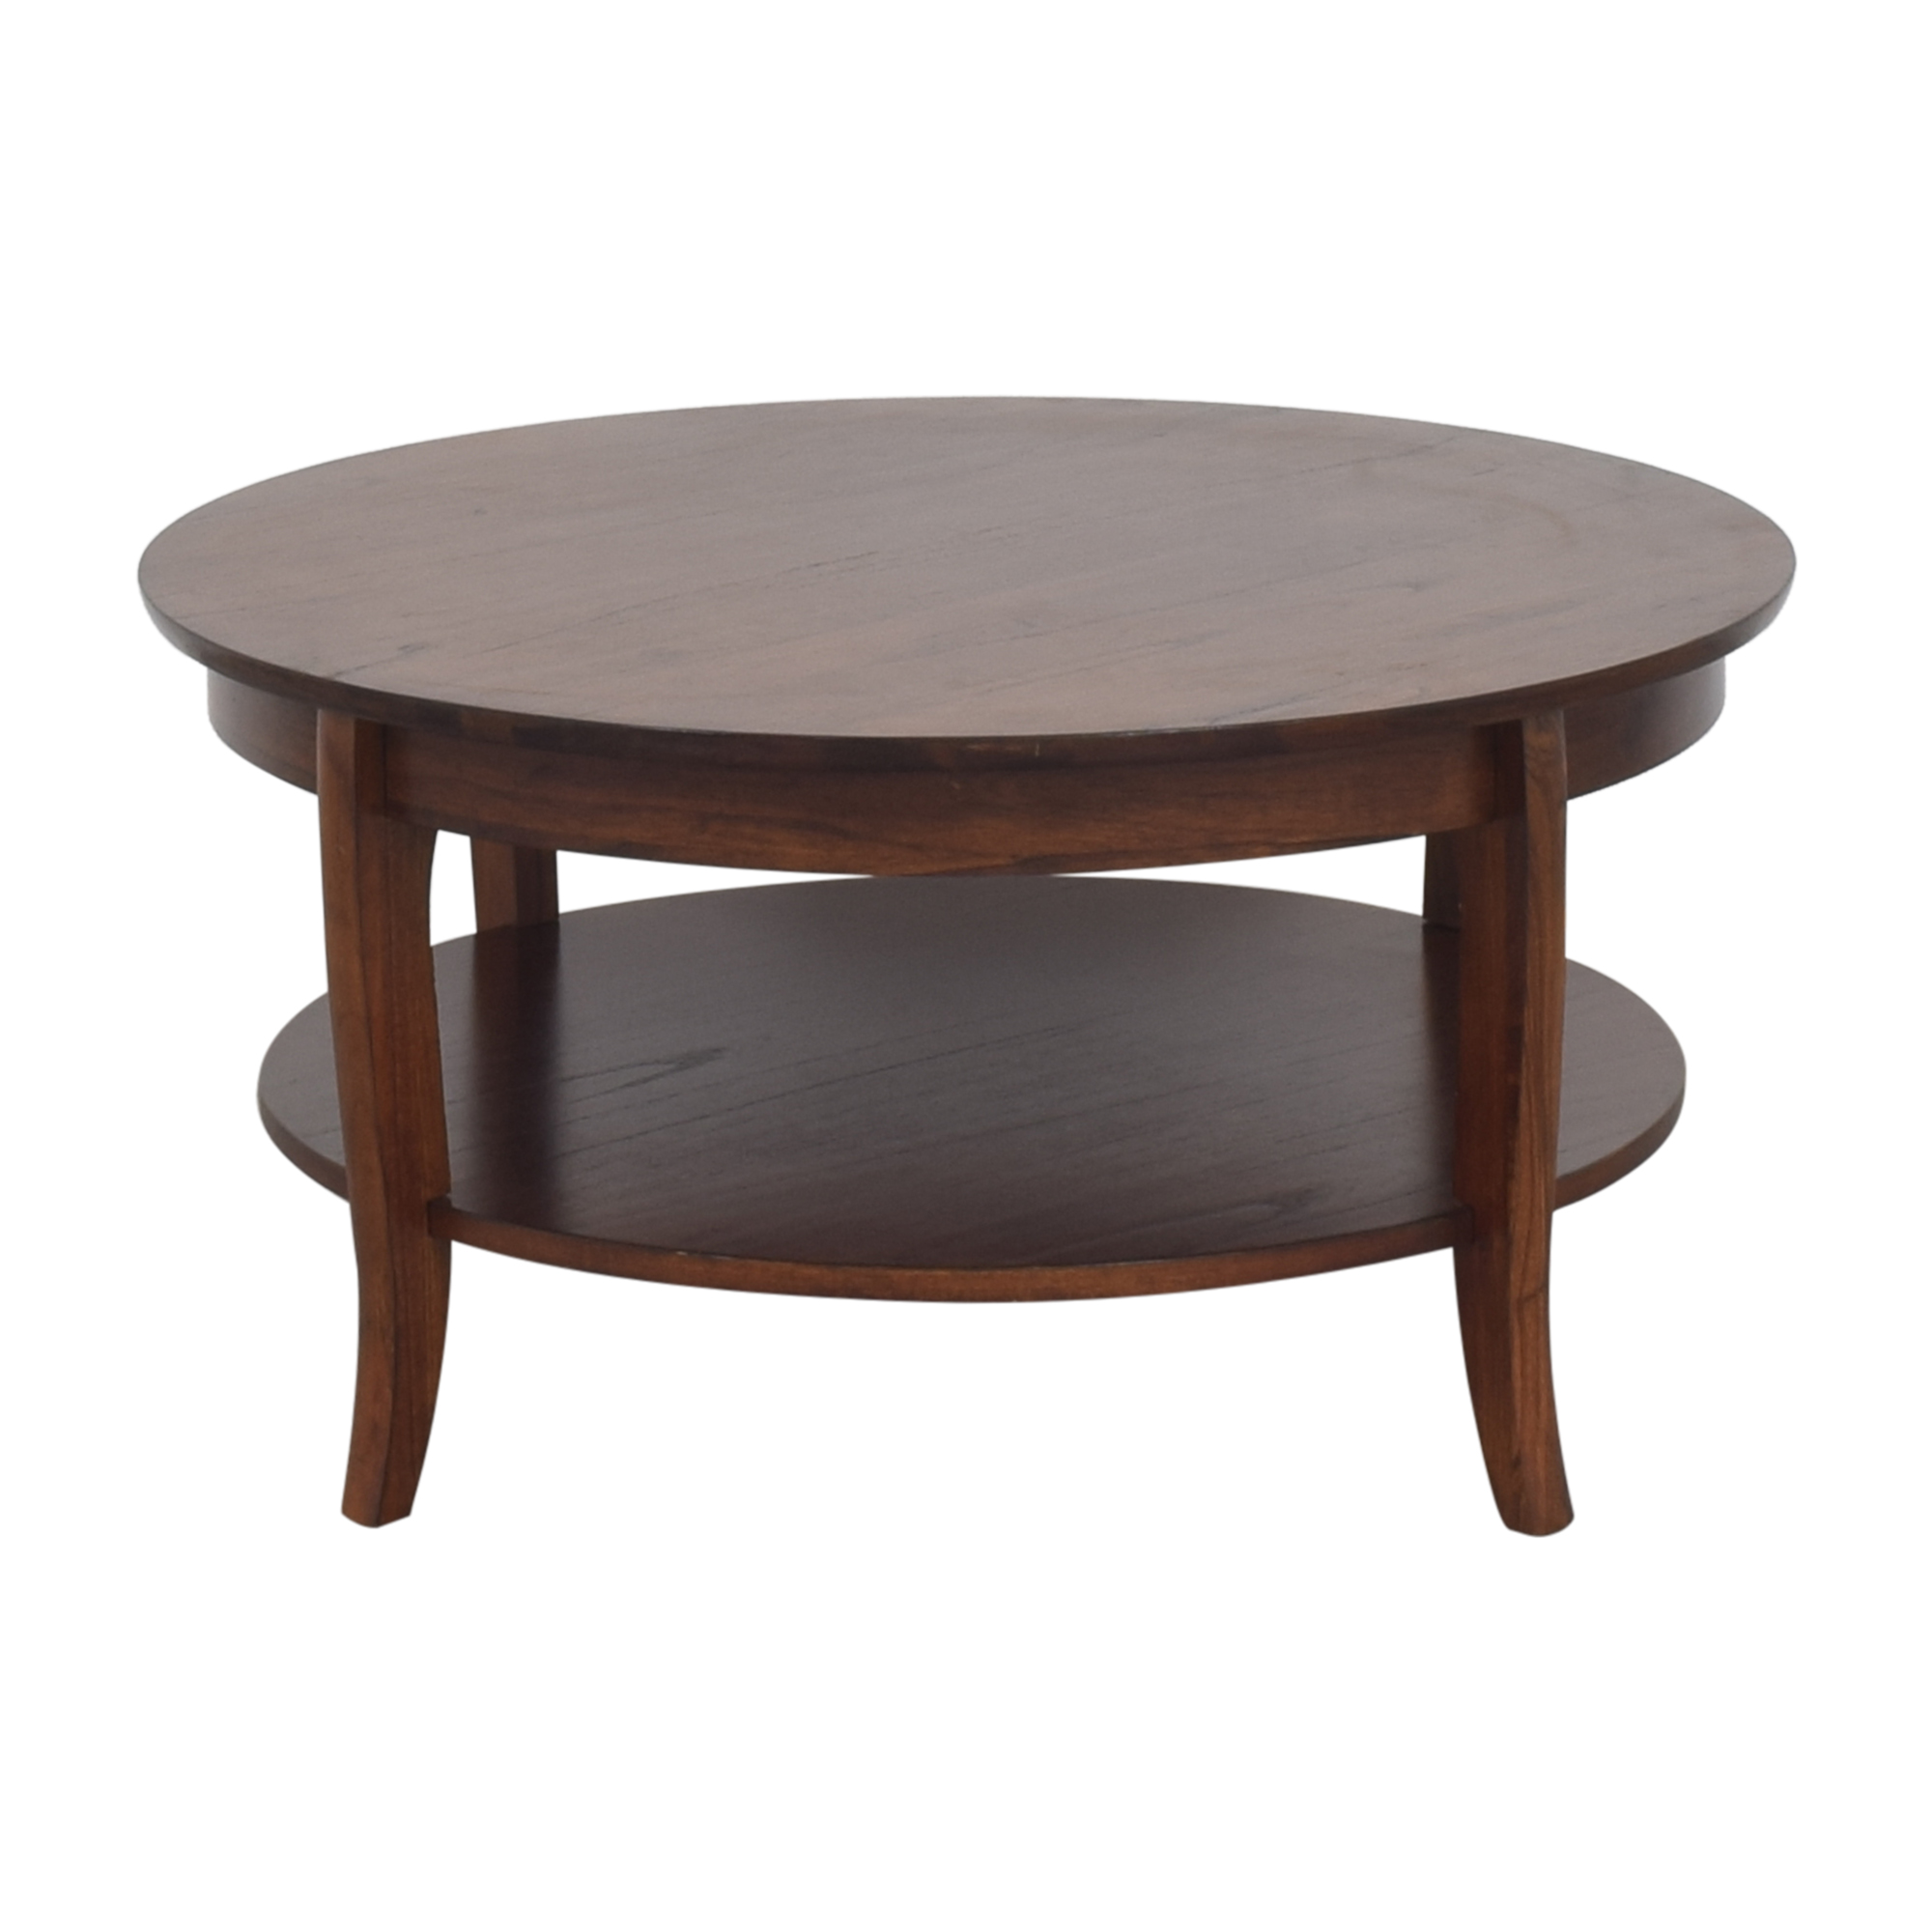 buy Macy's Round Coffee Table  Macy's